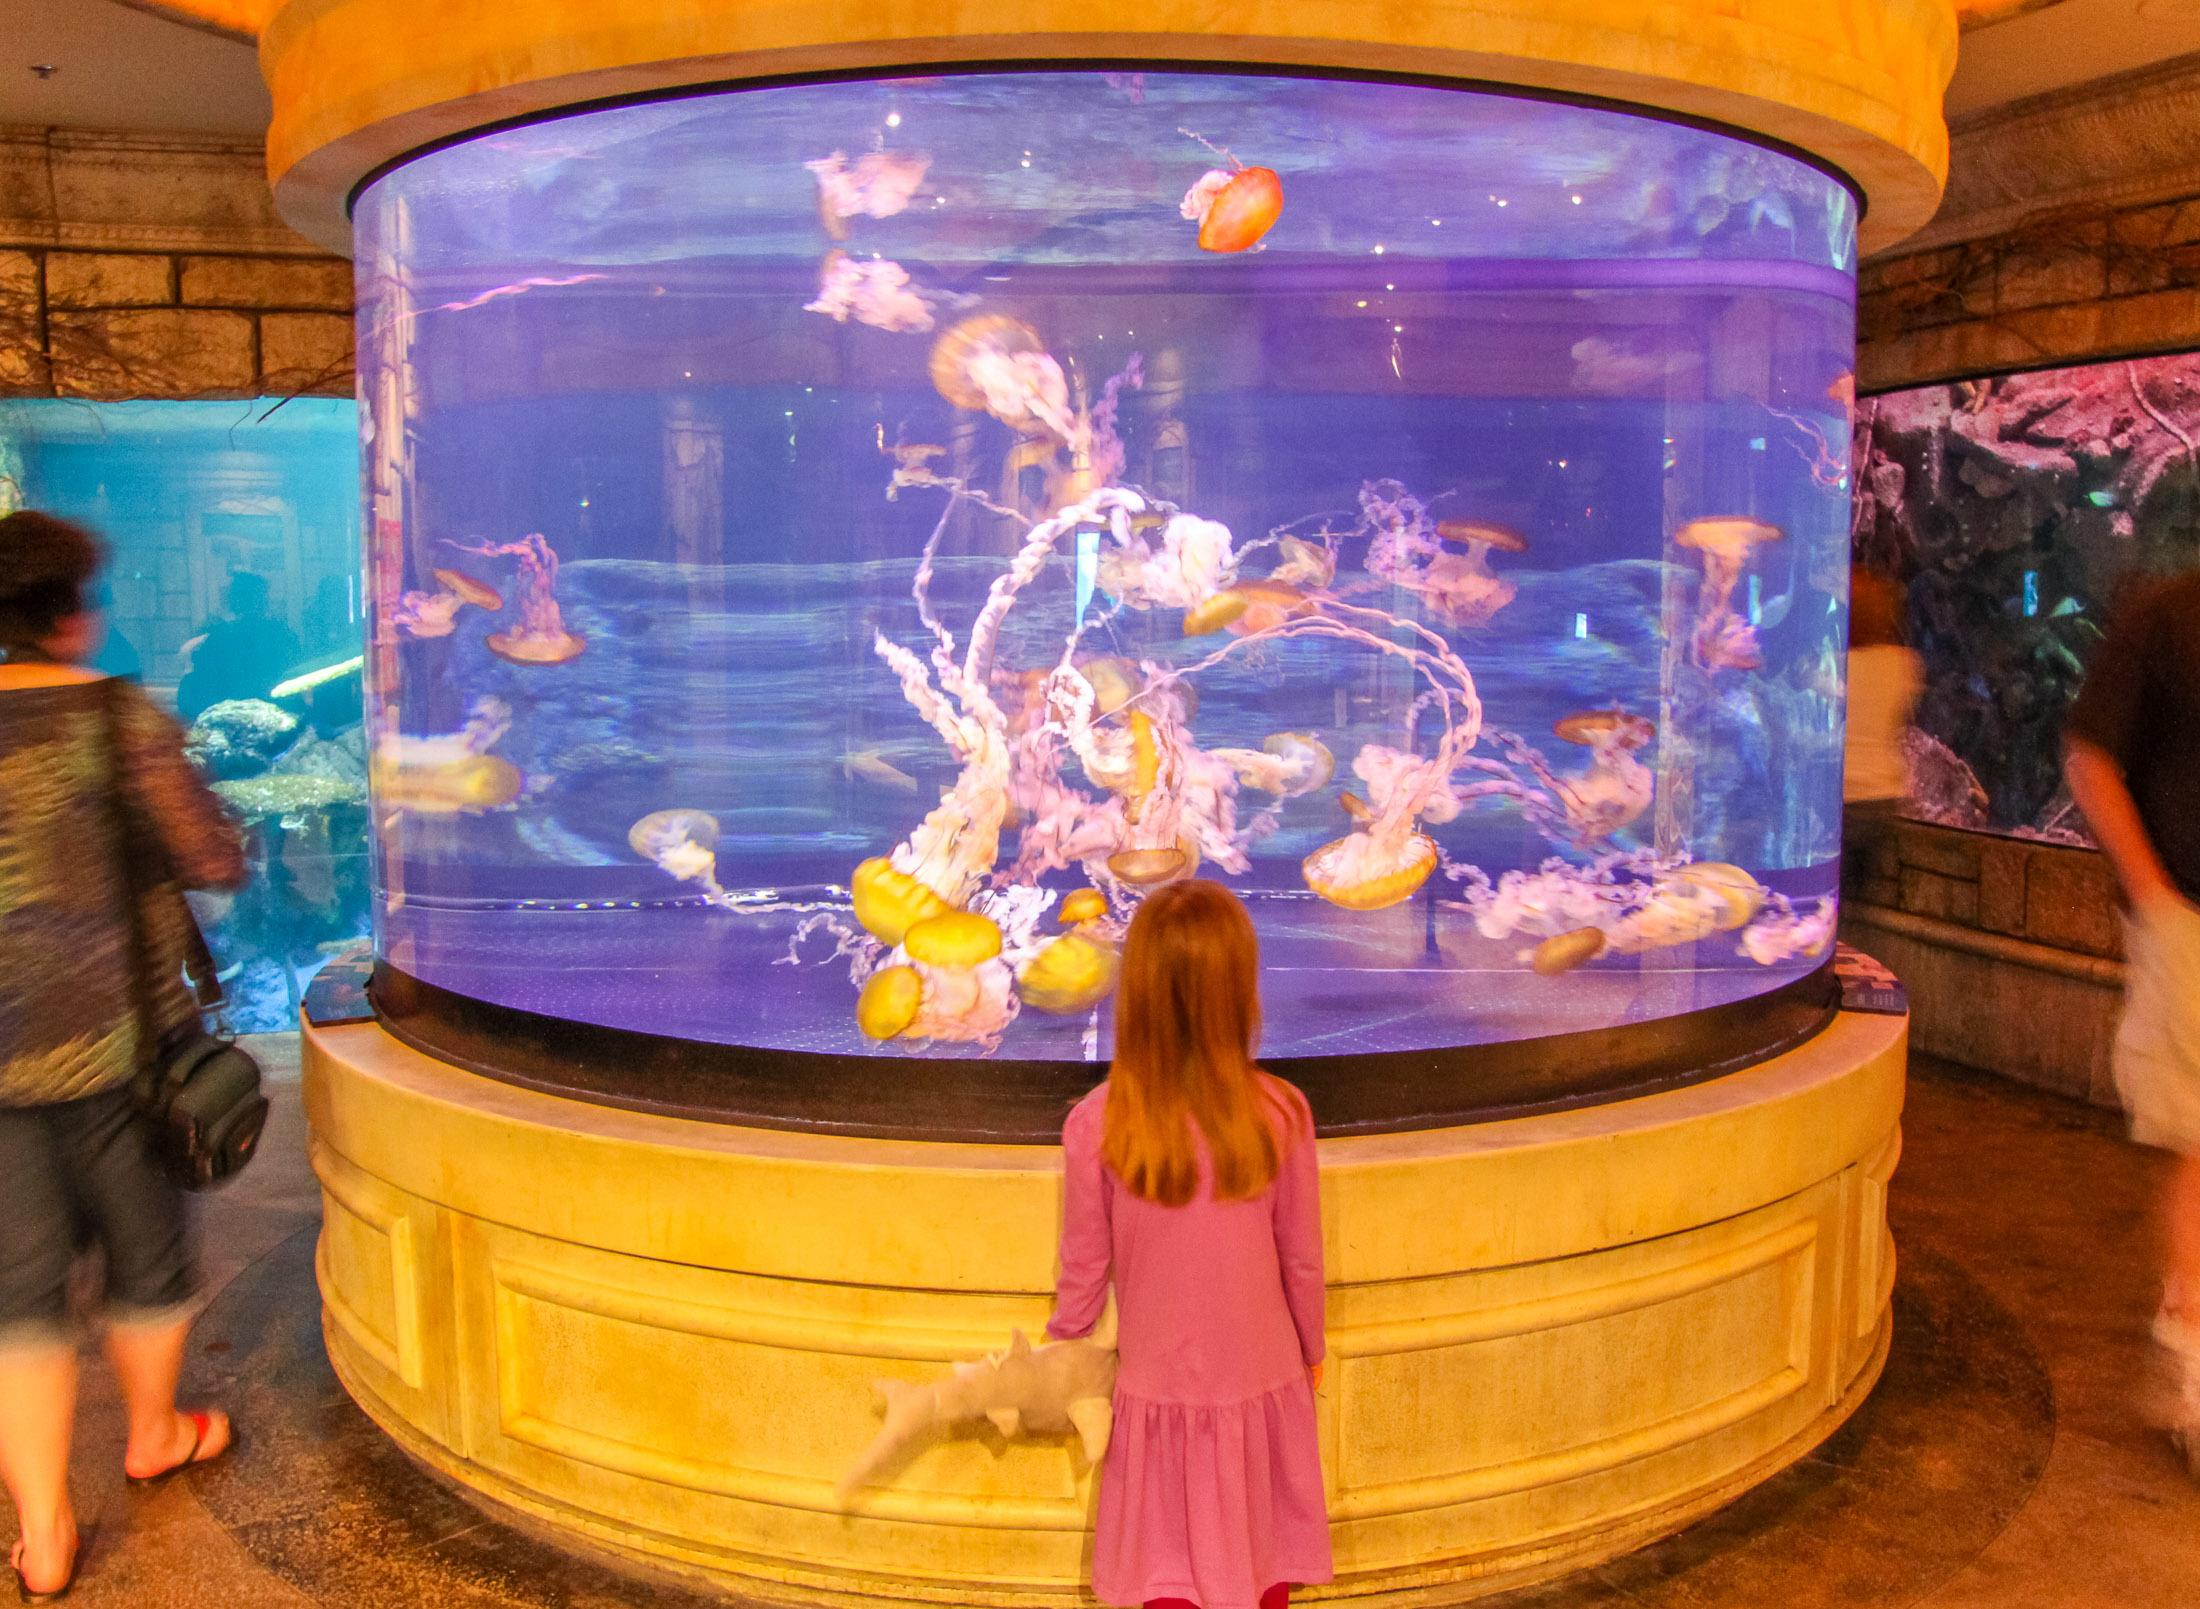 My daughter is standing in front of the jellyfish tank at The Shark Reef Aquarium, one of the fun activities in Las Vegas with kids.